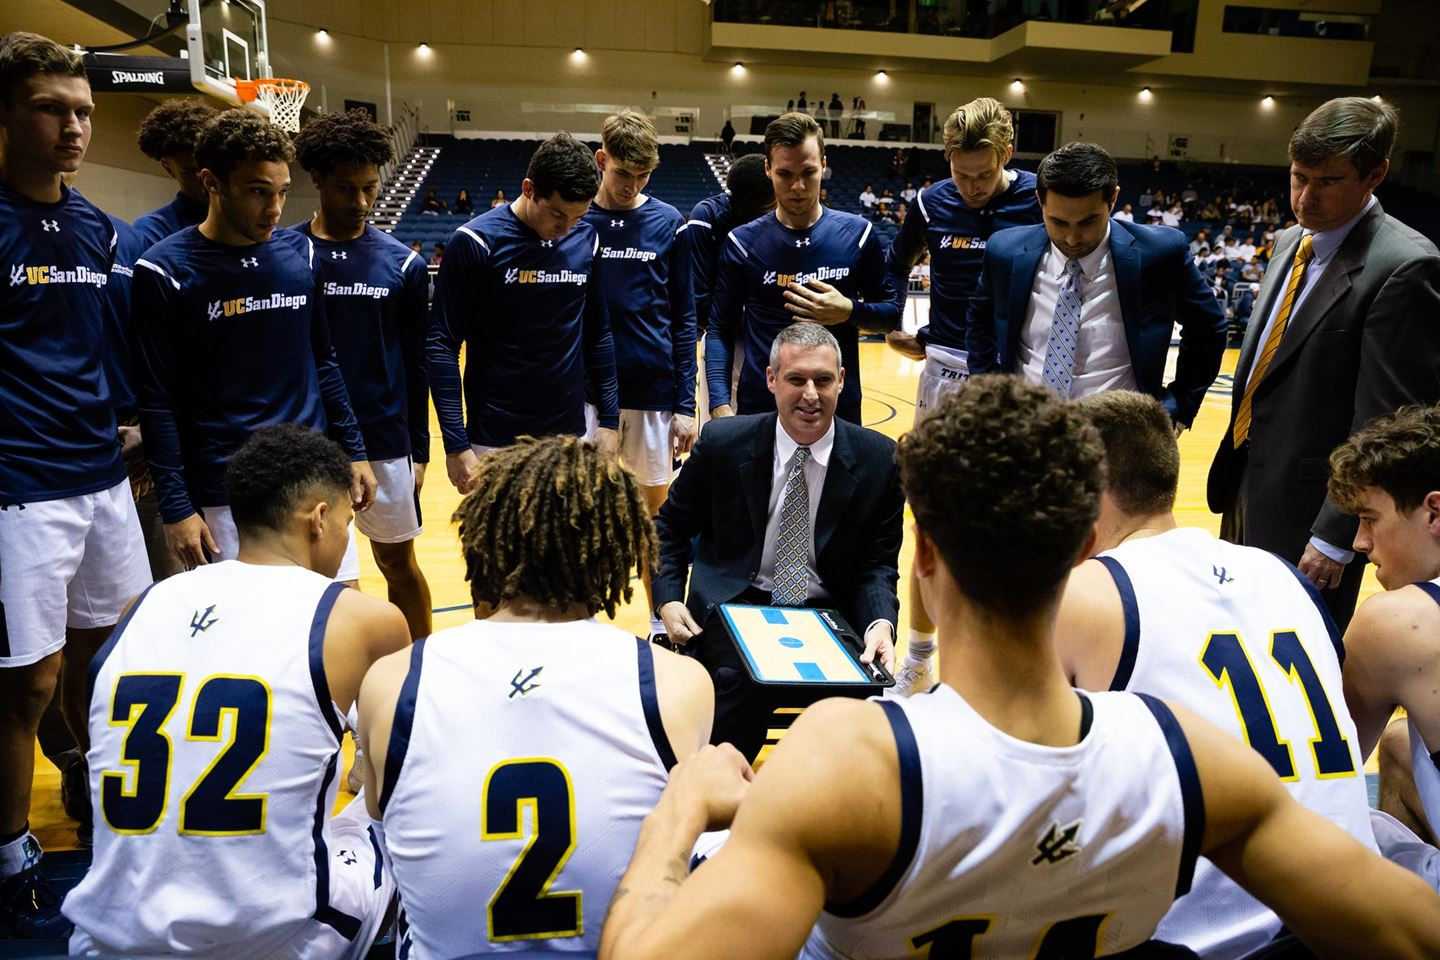 UCSD Men's Basketball to Make Big West Debut Against Cal Poly in January - Times of San Diego